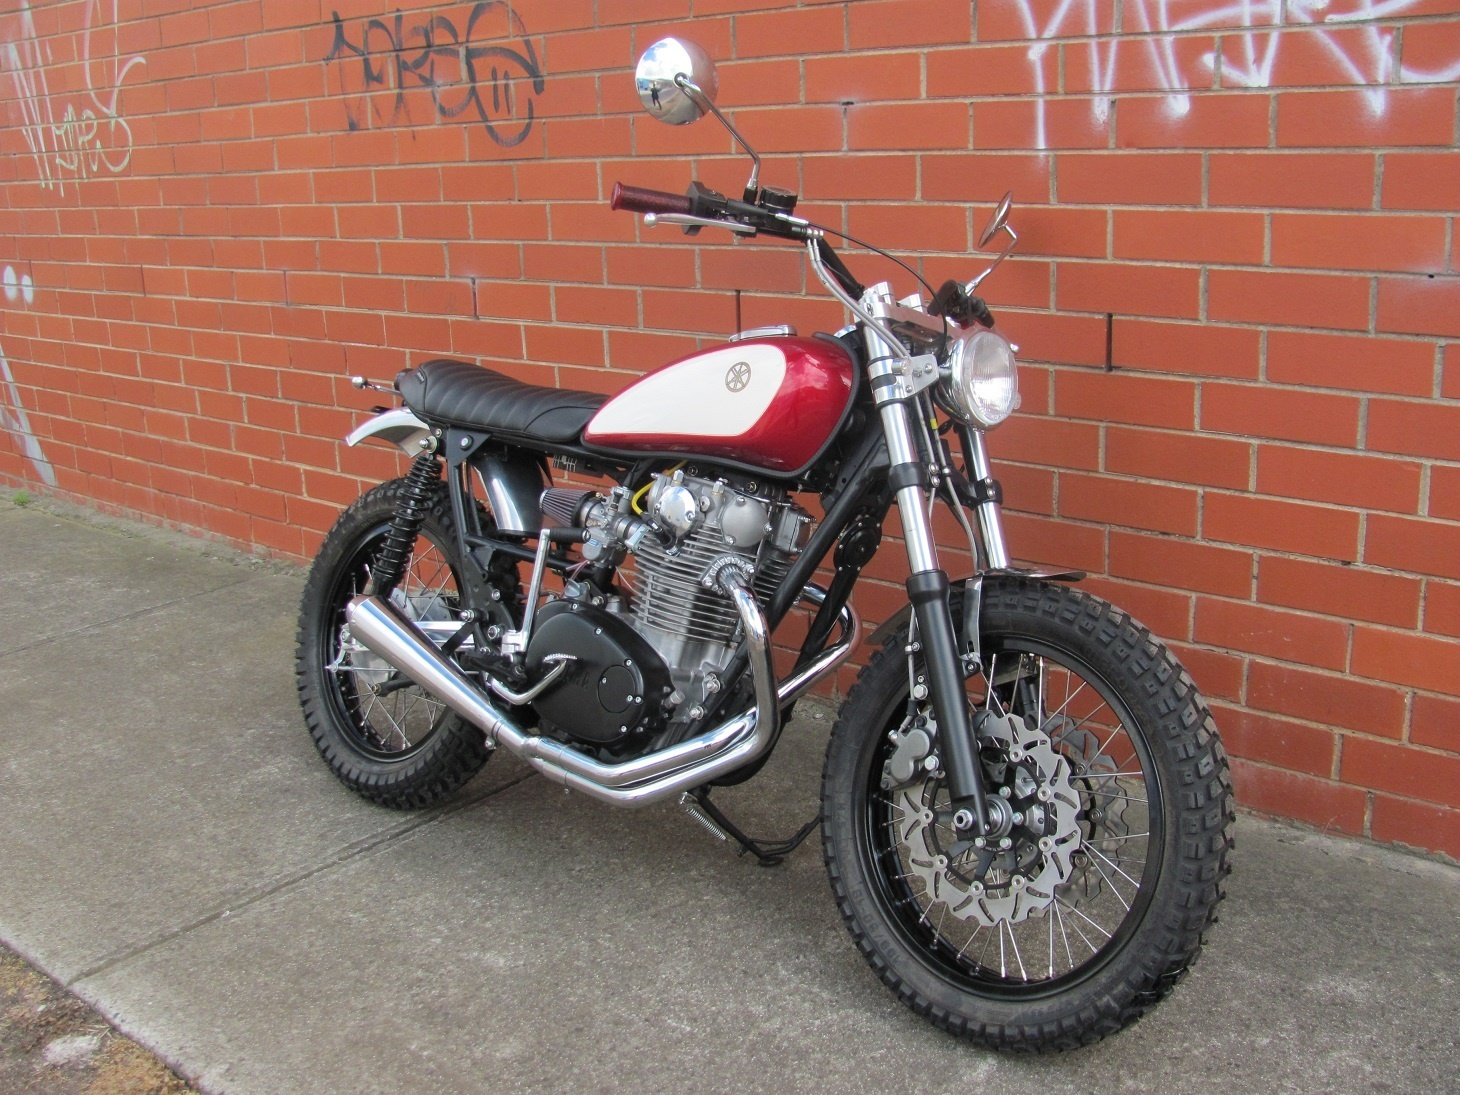 XS650: Professional Motorcycle Tuning, Australia | thexscafe on chopper wiring diagram, yz426f wiring diagram, xvz1300 wiring diagram, yamaha wiring diagram, cb750 wiring diagram, xs360 wiring diagram, xj550 wiring diagram, xt350 wiring diagram, xv535 wiring diagram, virago wiring diagram, xv920 wiring diagram, xvs650 wiring diagram, xj750 wiring diagram, xj650 wiring diagram, it 250 wiring diagram, xs400 wiring diagram, fz700 wiring diagram, xs850 wiring diagram, fj1100 wiring diagram, xs1100 wiring diagram,